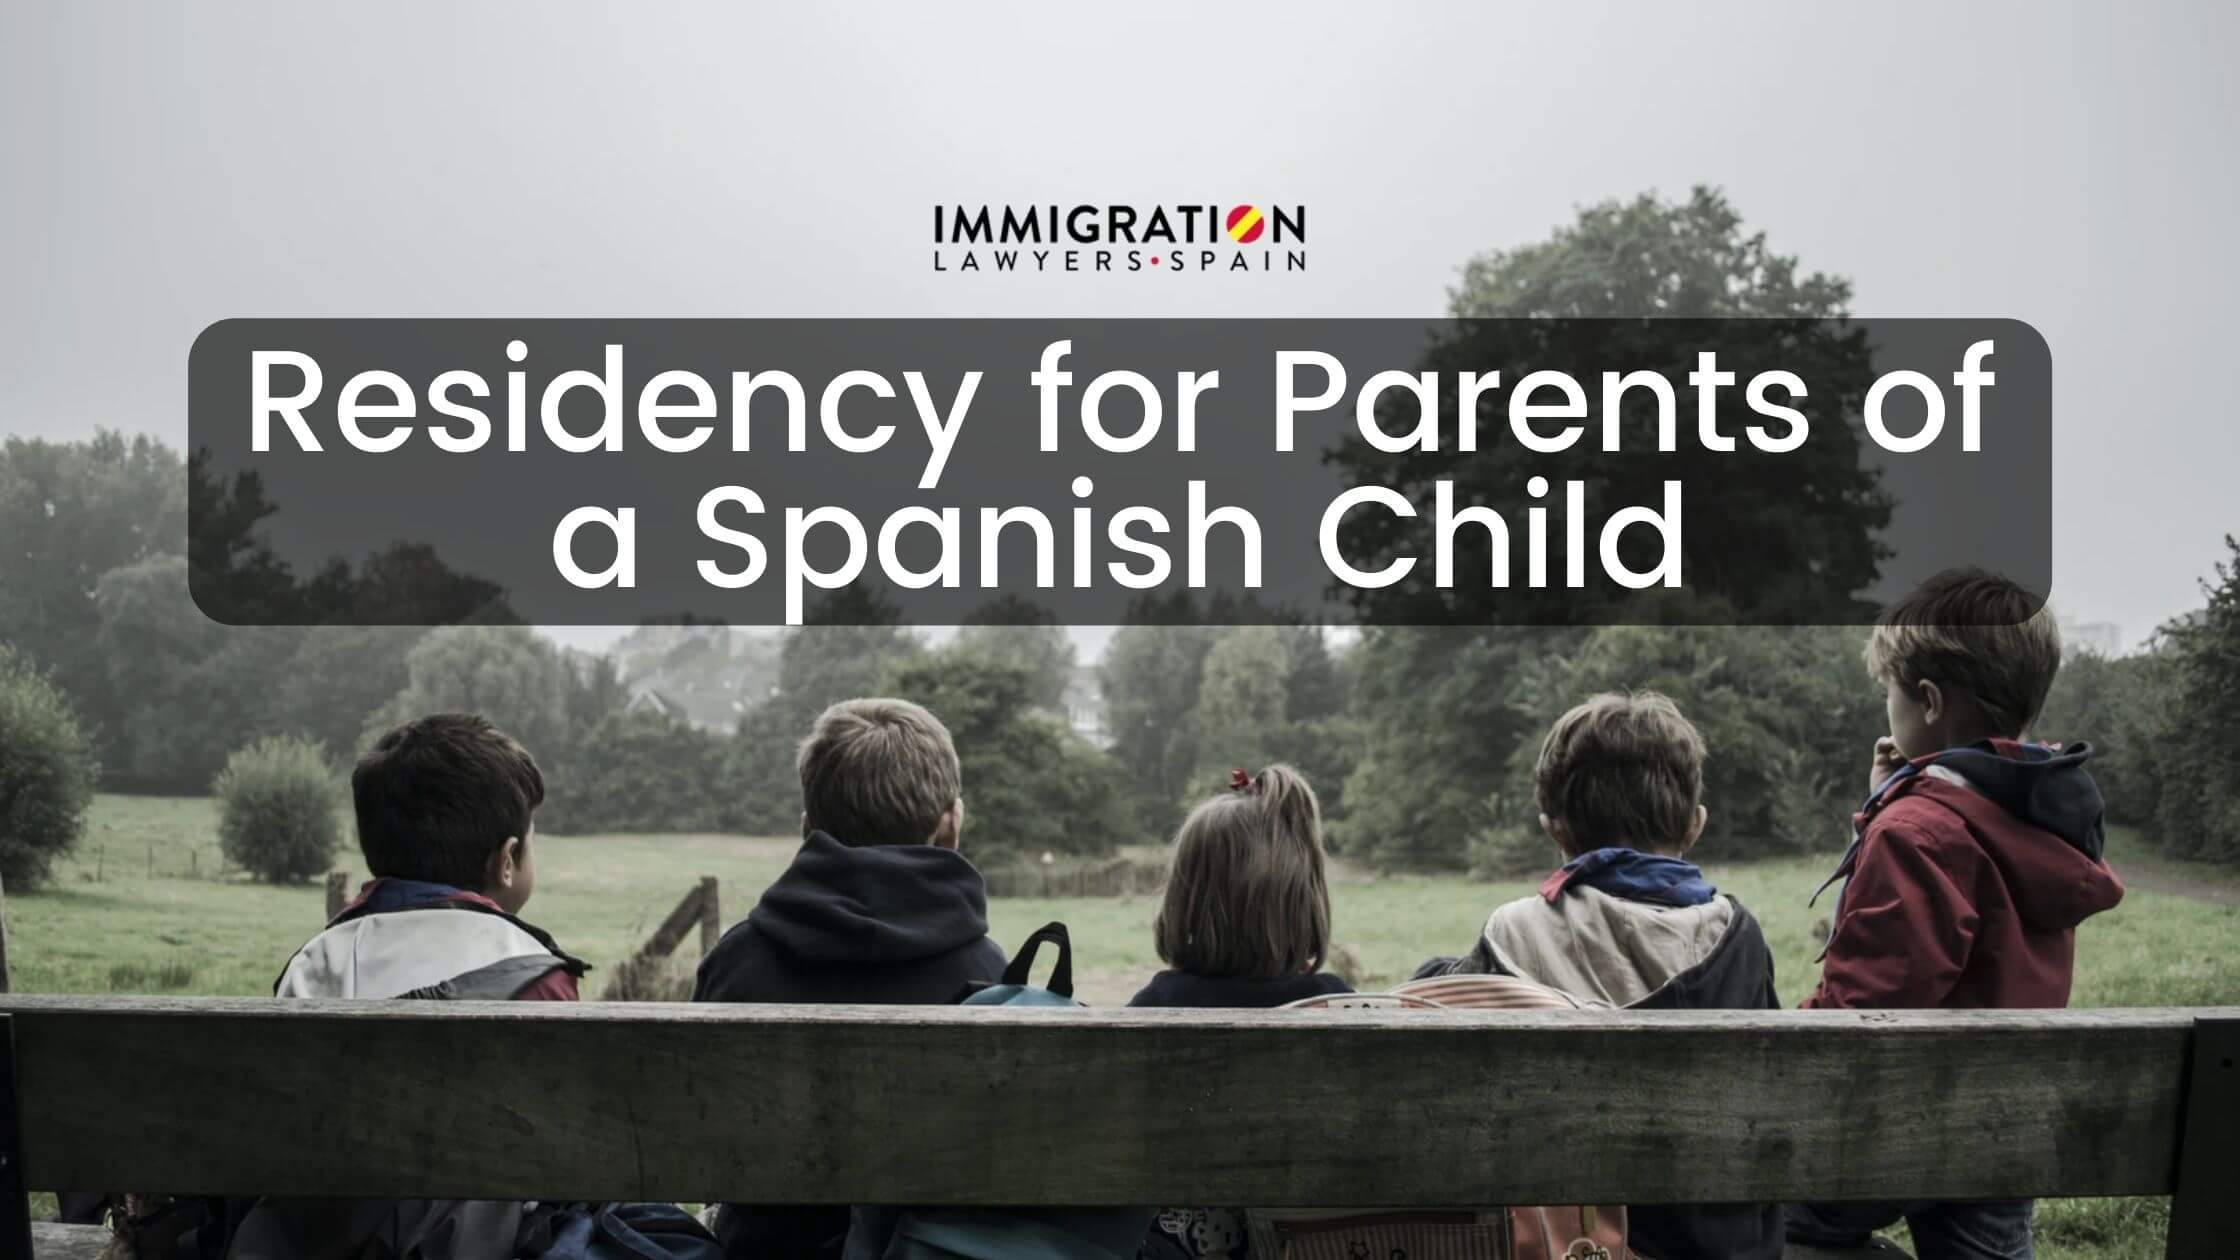 residency for parents of Spanish child